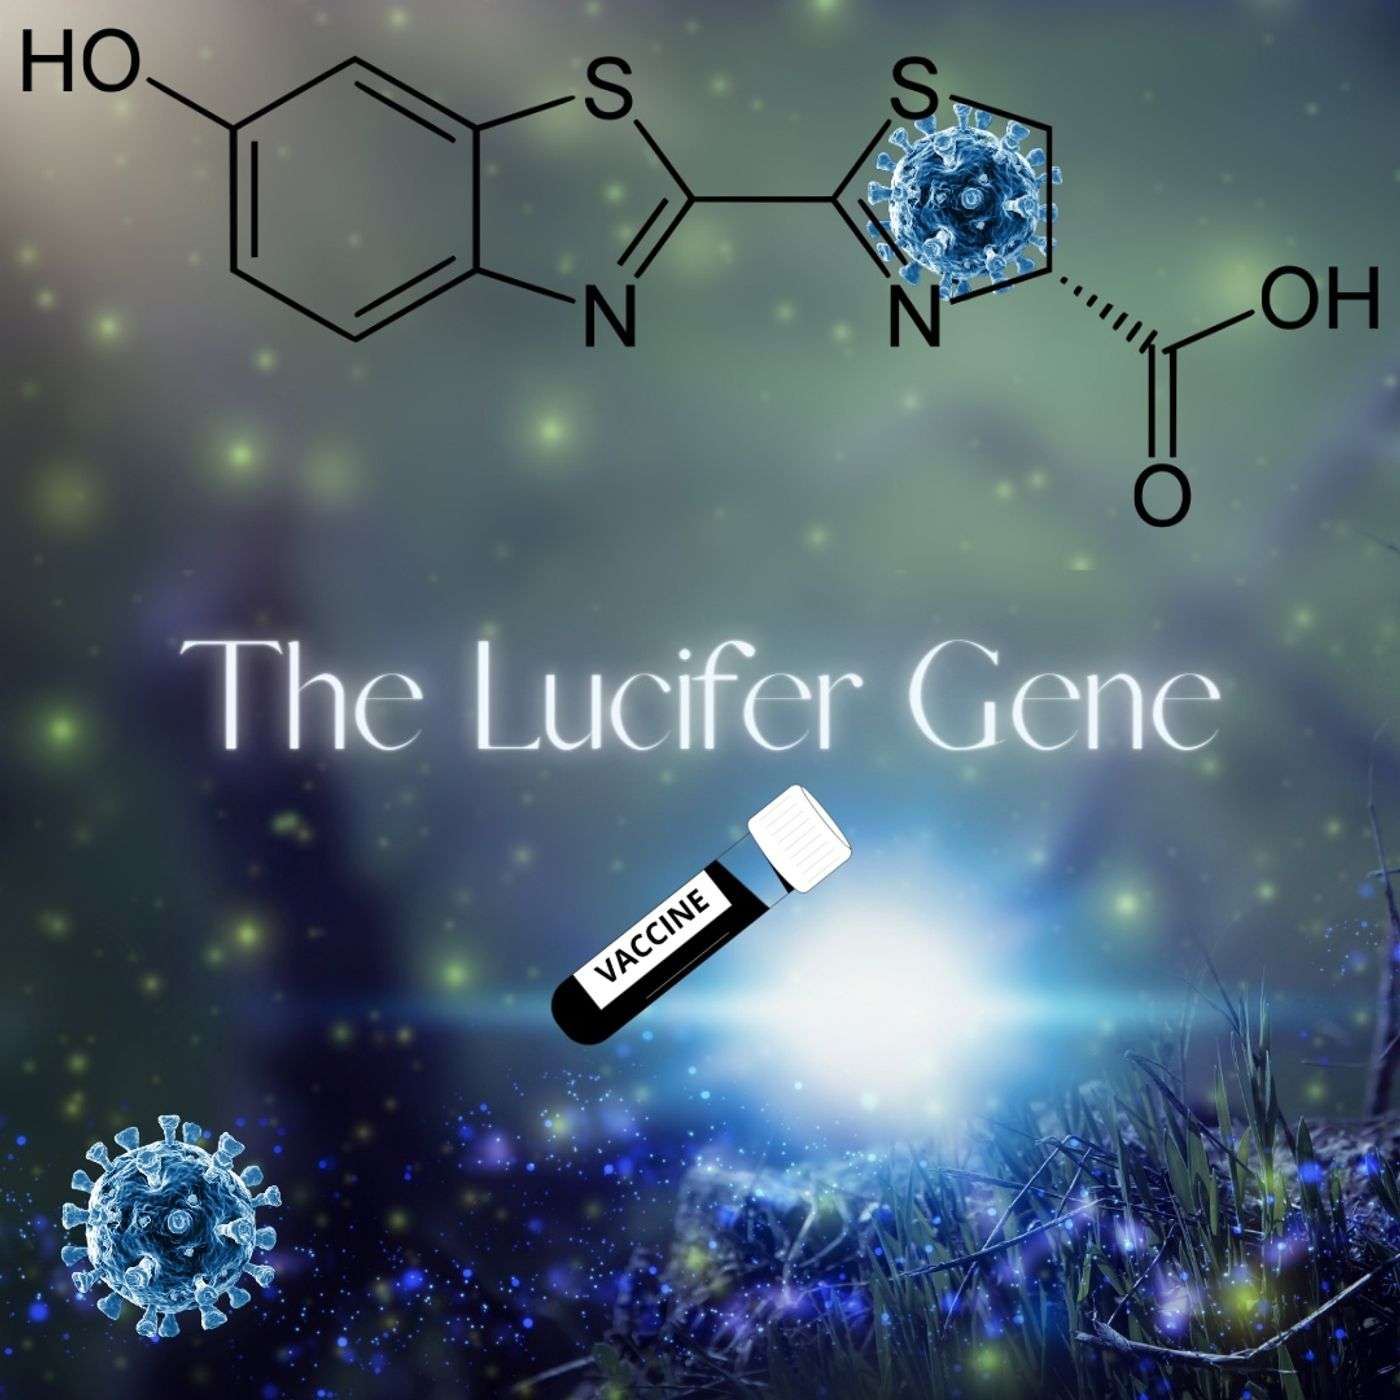 Episode 98- The Lucifer Gene